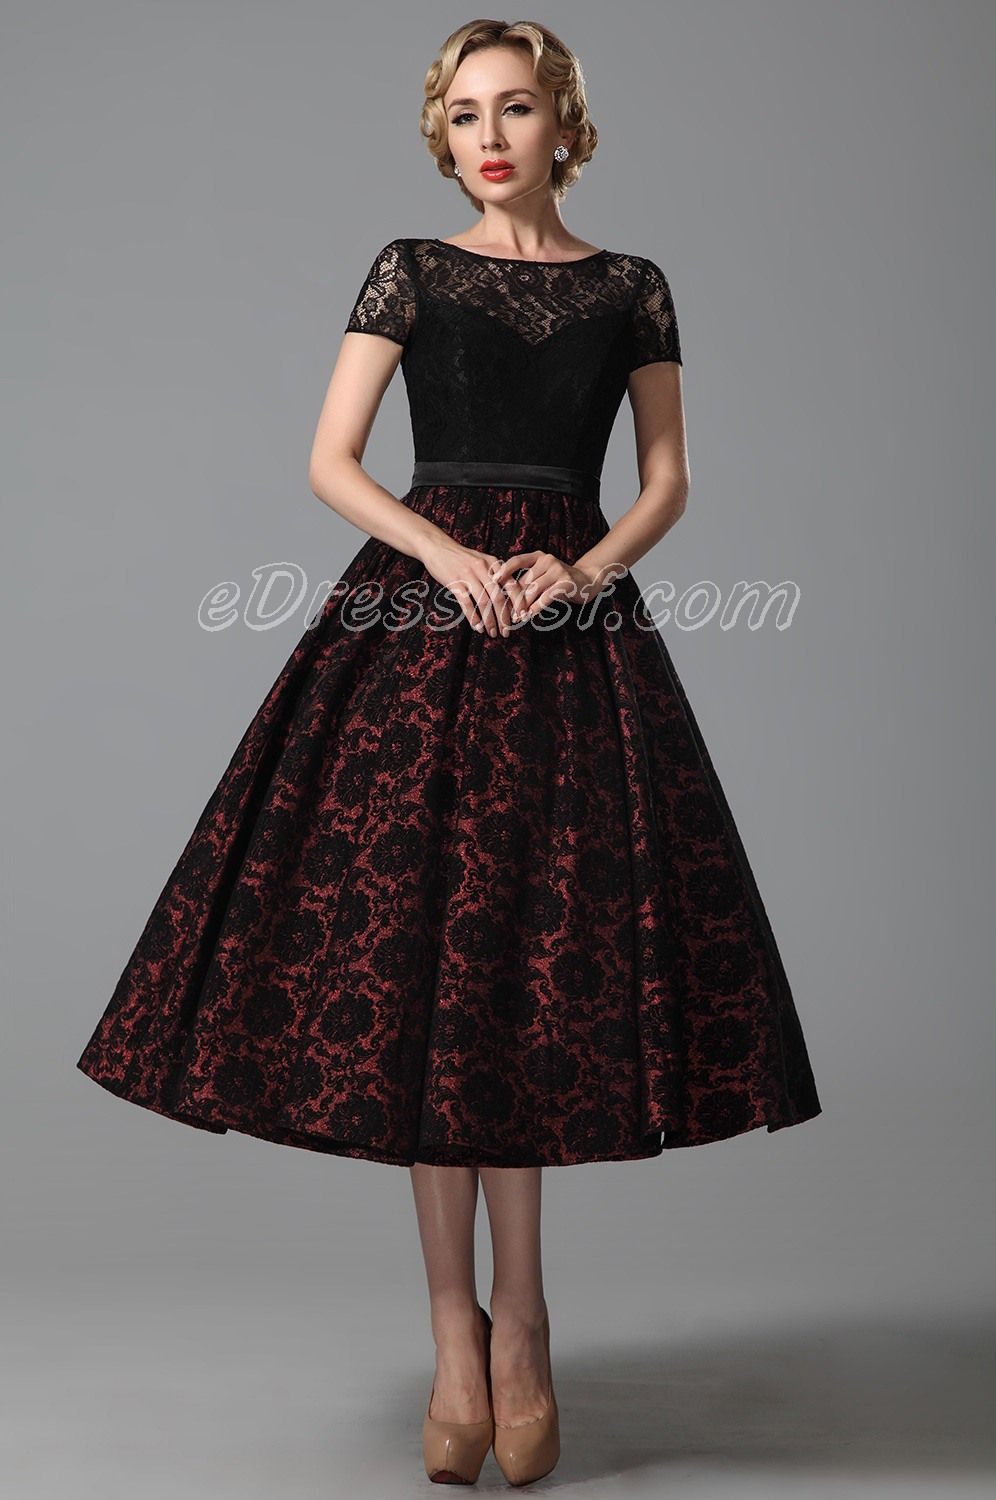 2015 New Vintage Short Lace Sleeves Tea Length Cocktail Dress Party ... 75ad26929f64